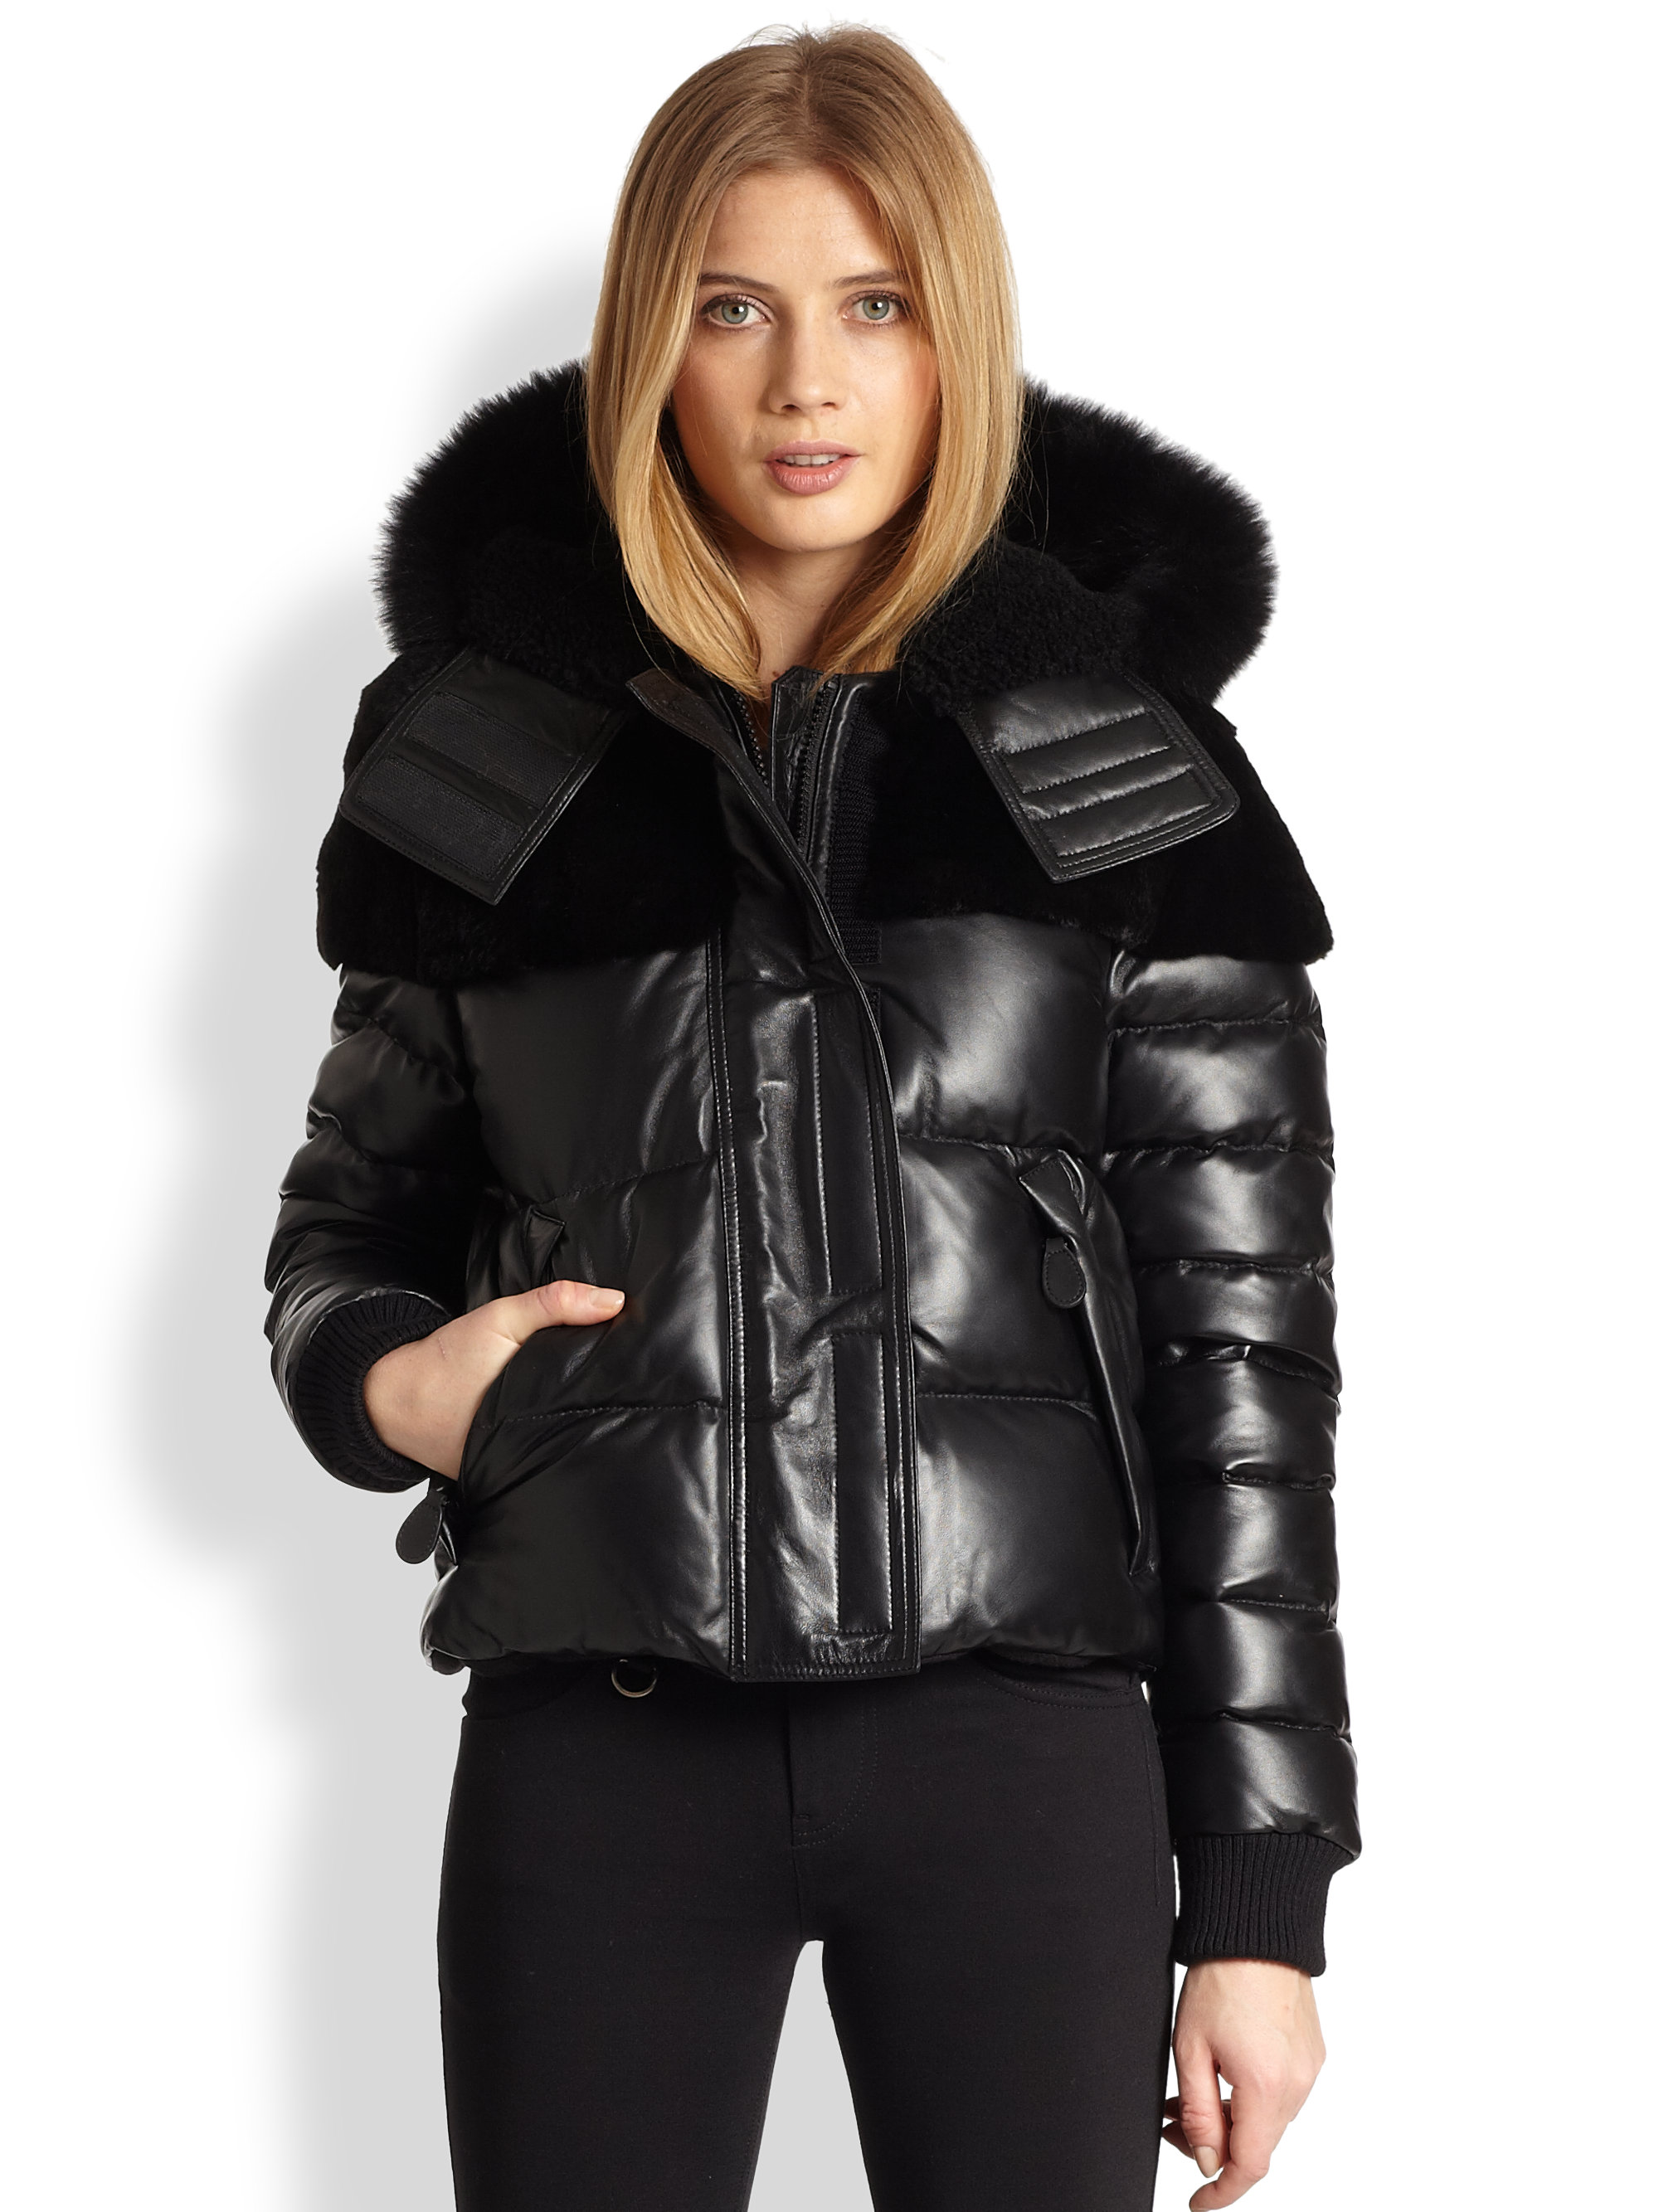 Black Puffer Jacket Women S